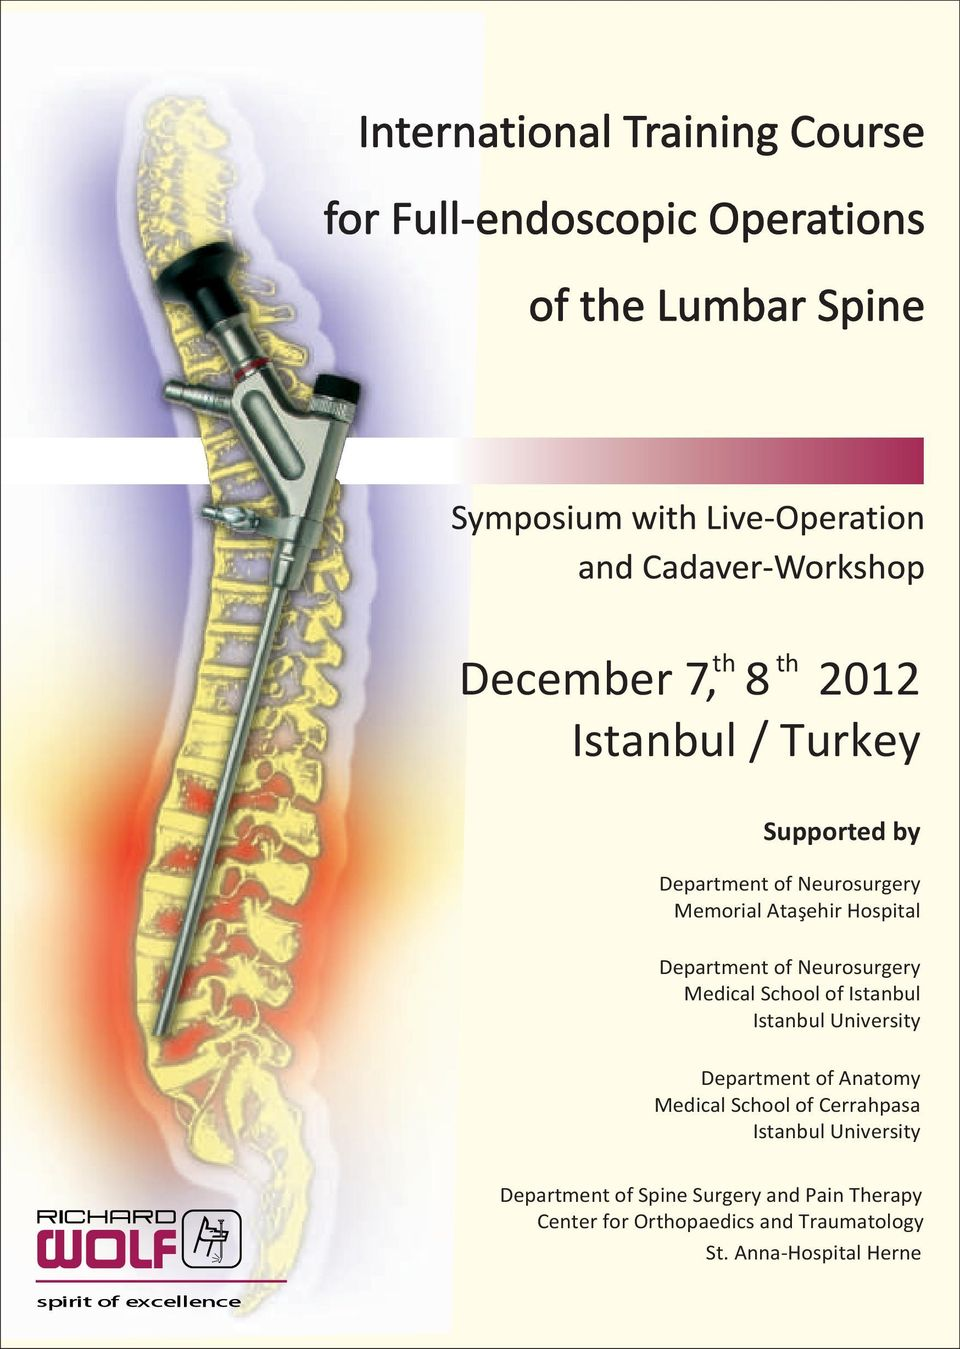 School of Cerrahpasa Department of Spine Surgery and Pain